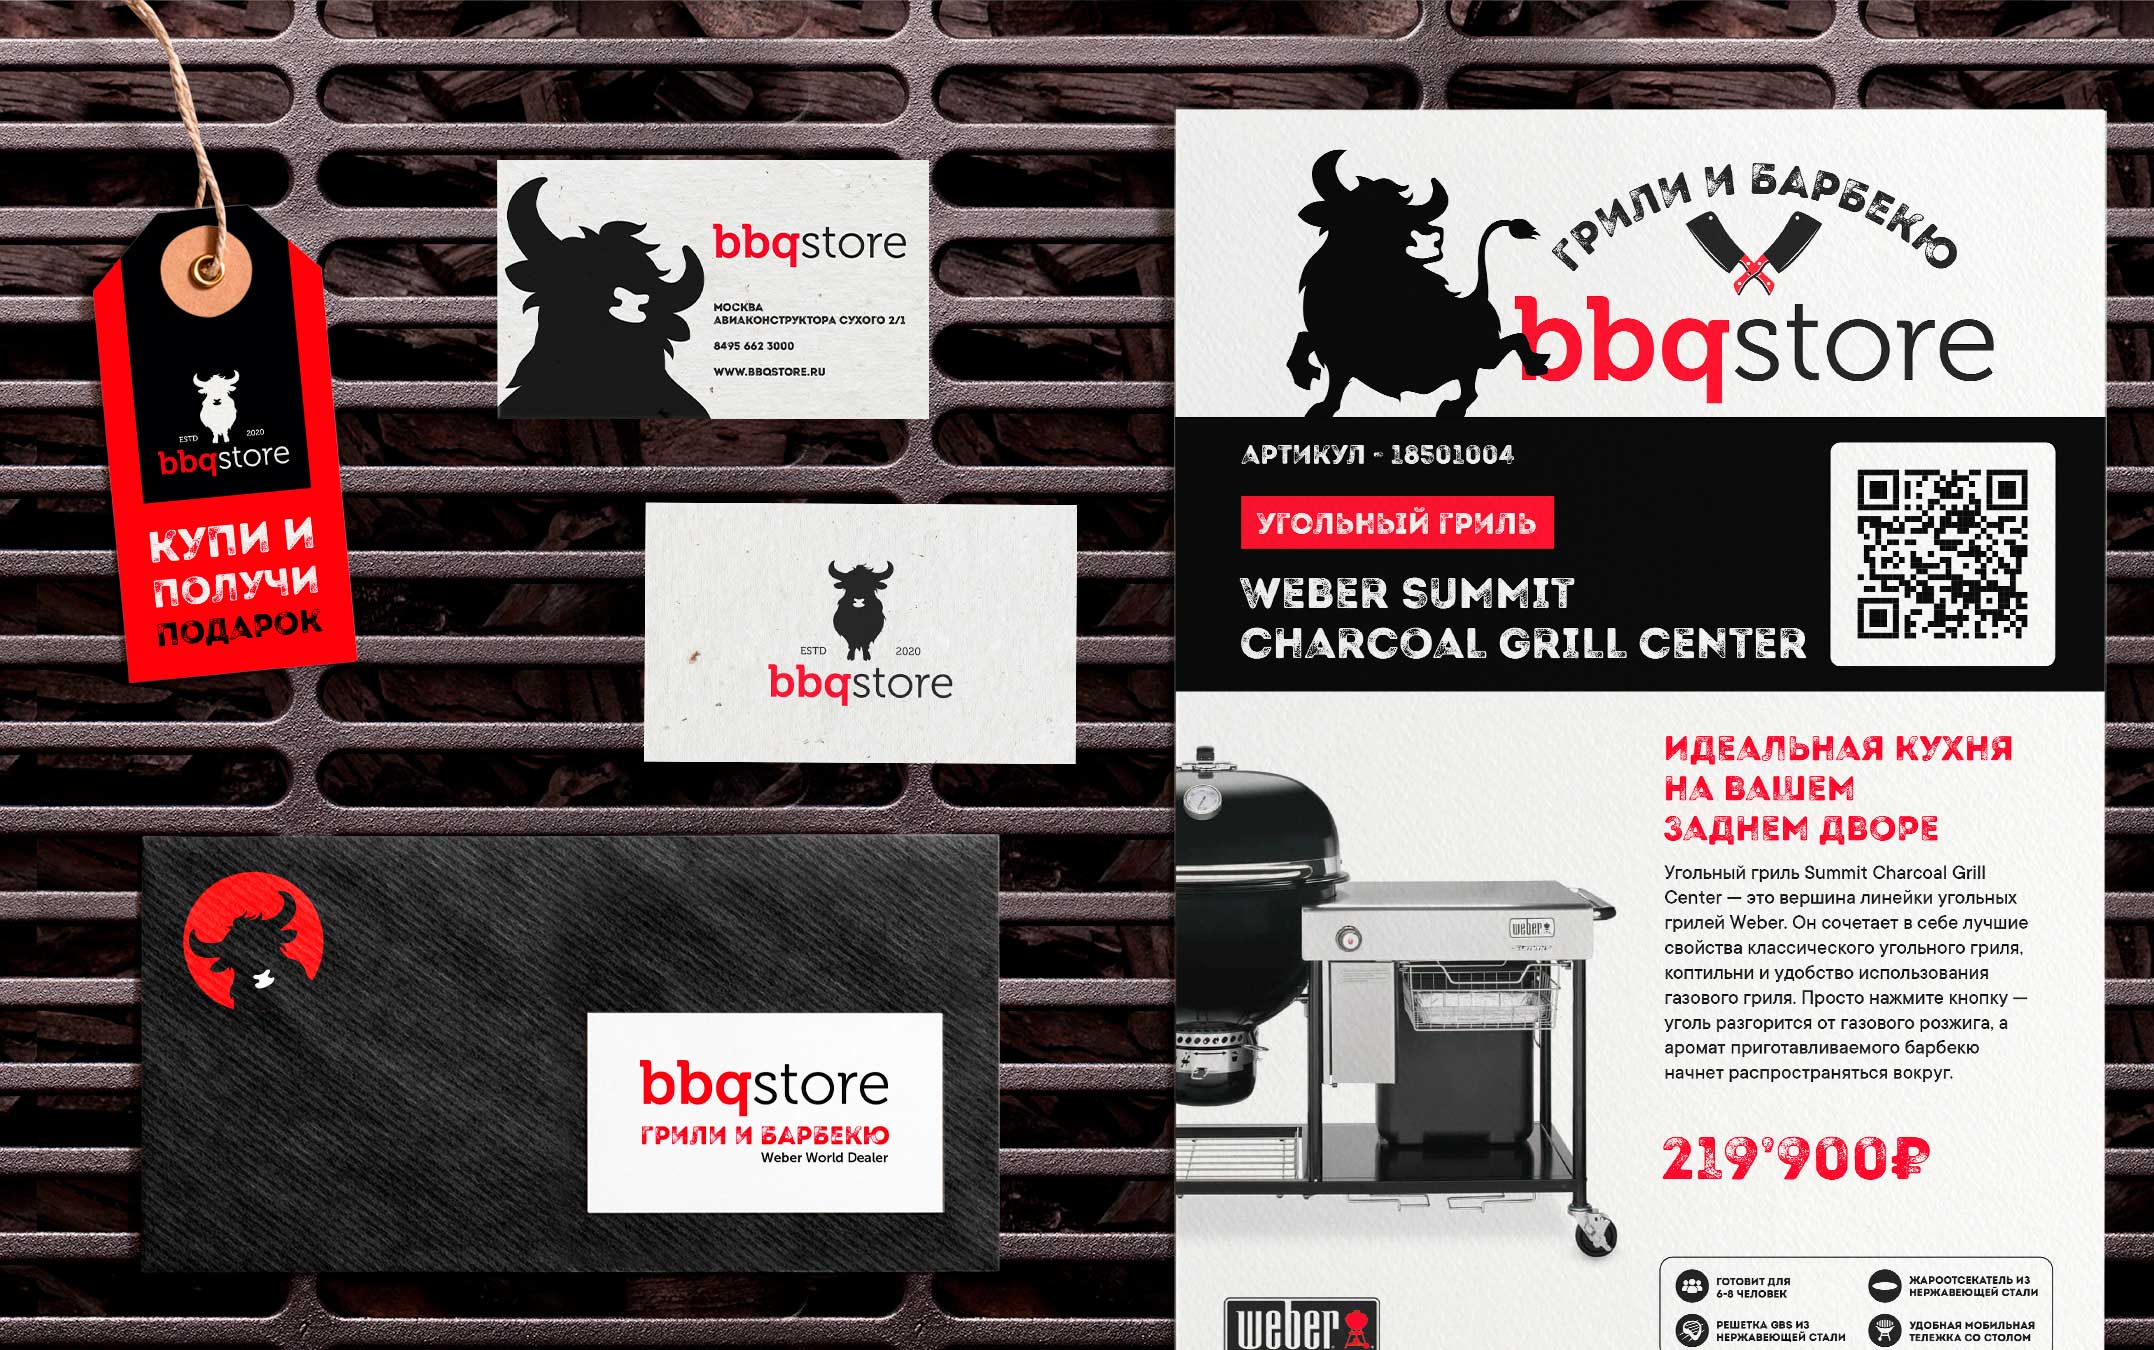 BBQ Store